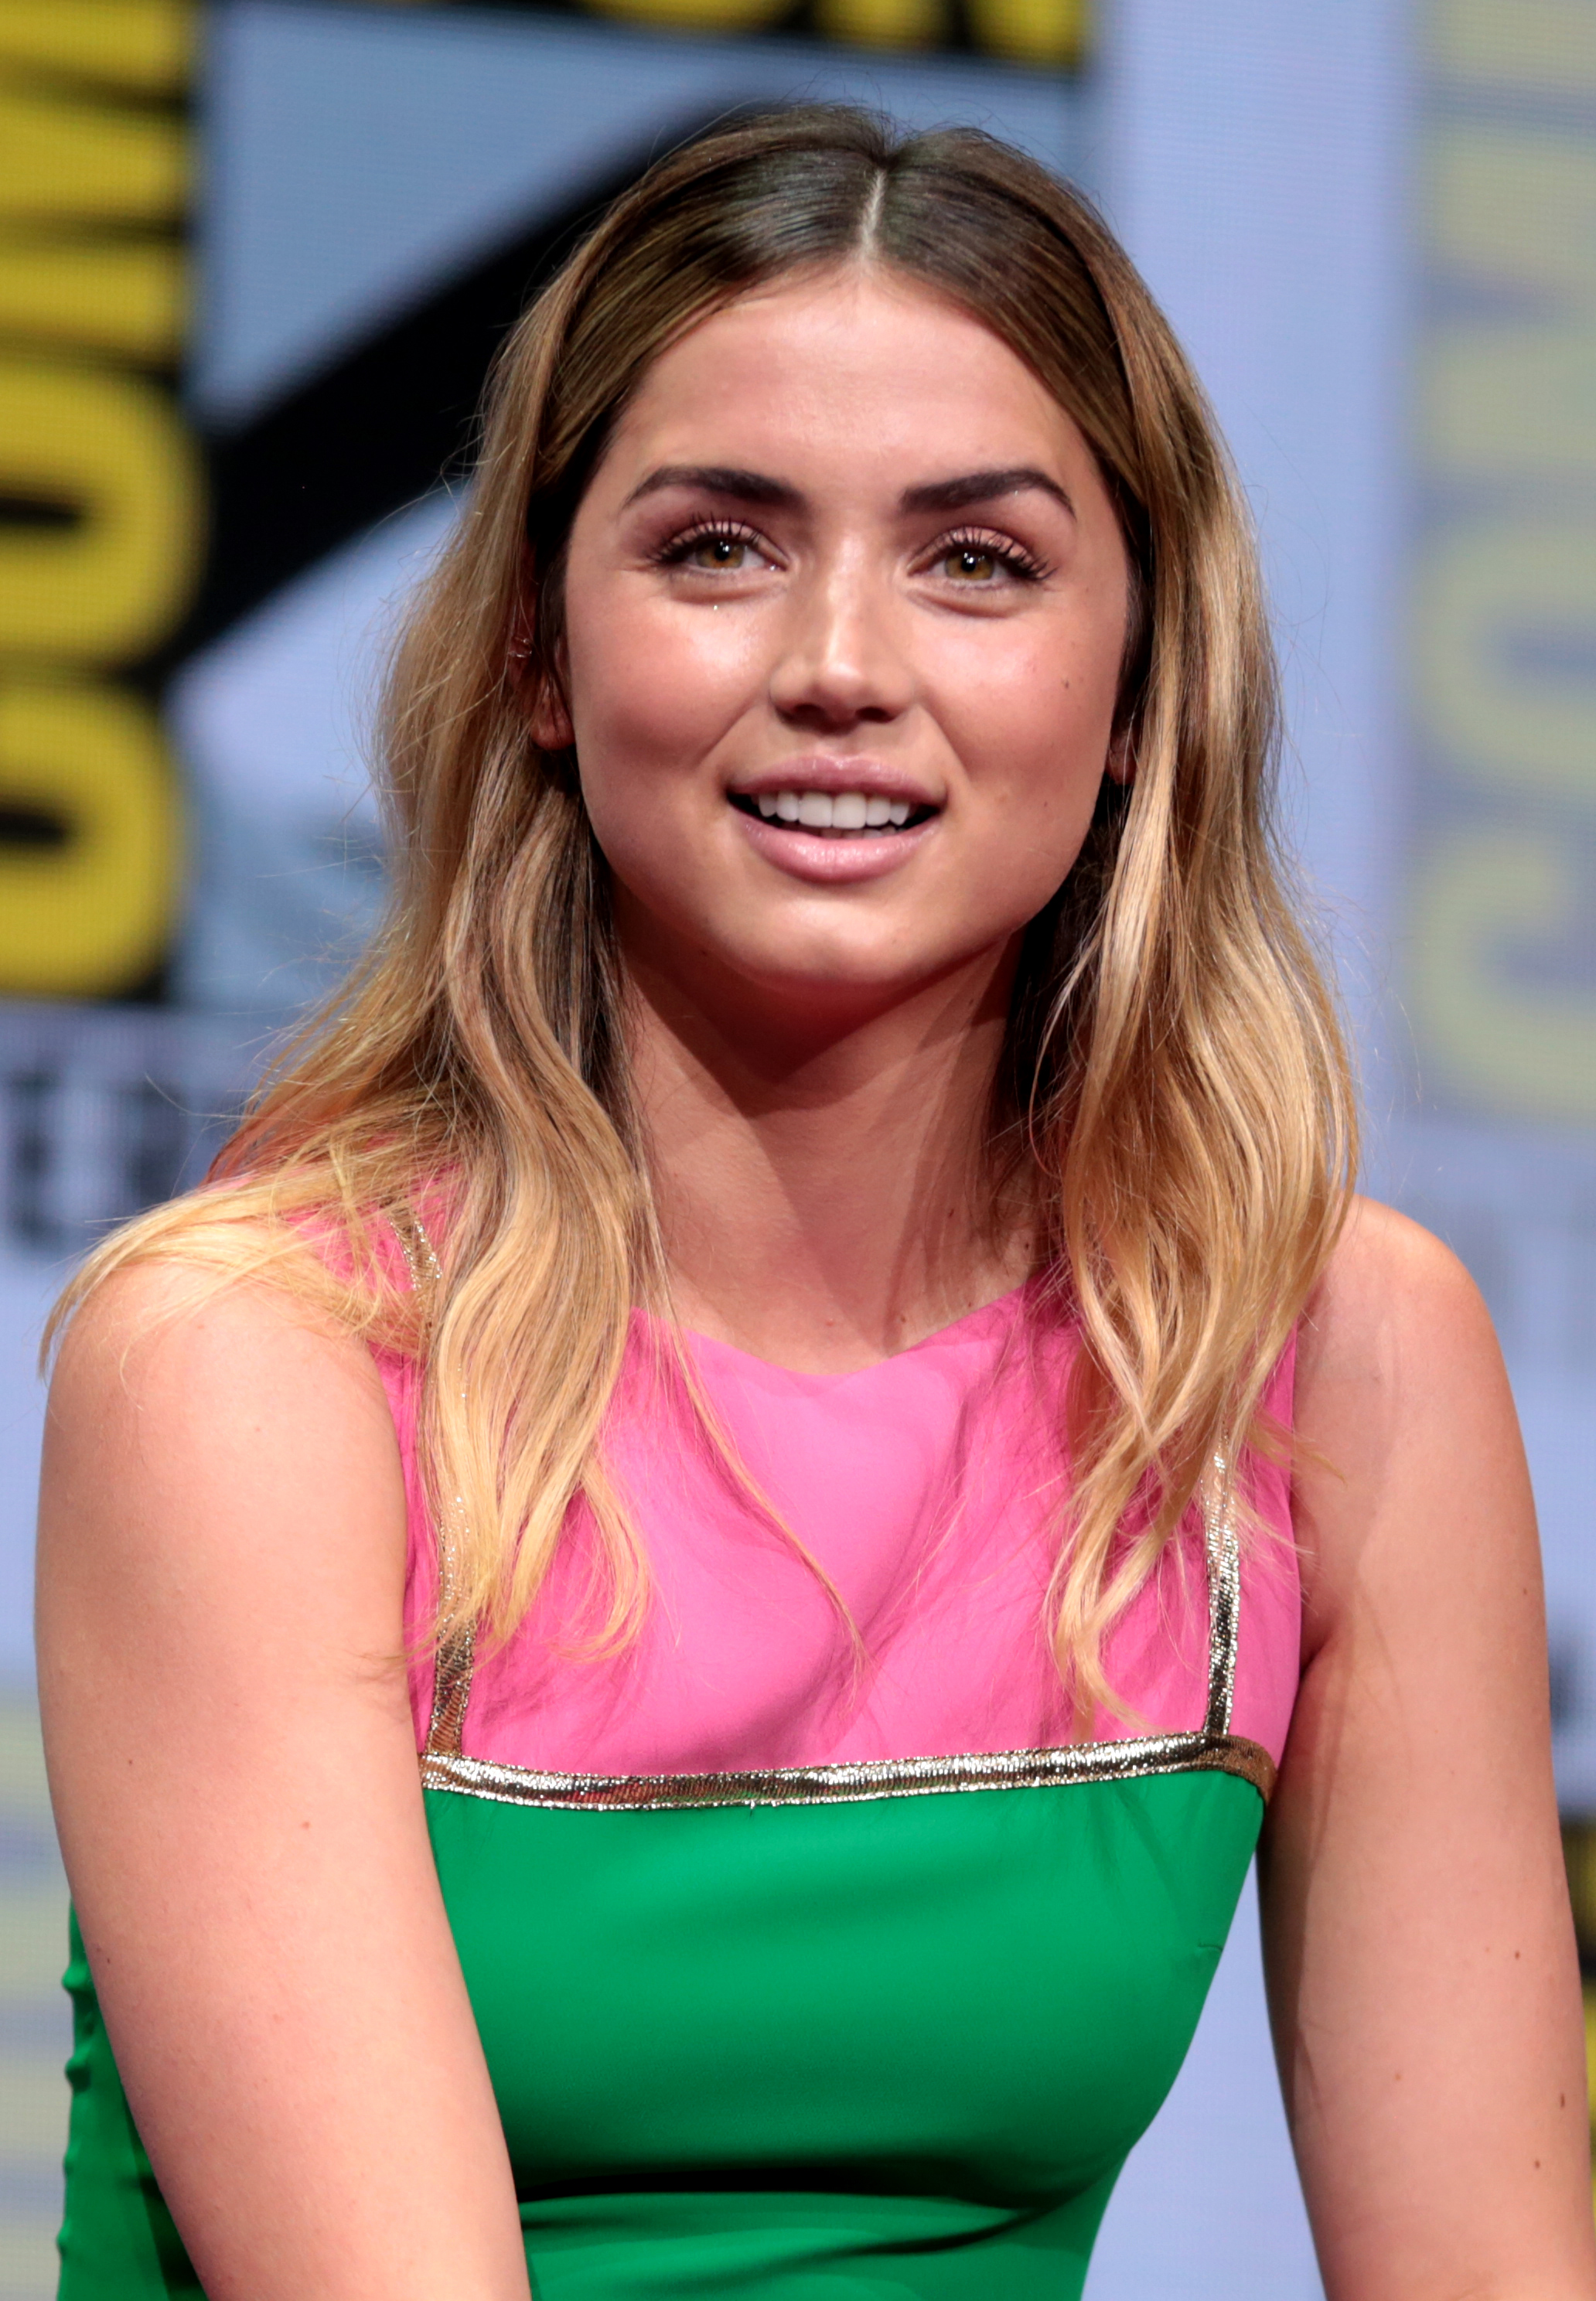 Ana de Armas speaking at the 2017 San Diego Comic-Con